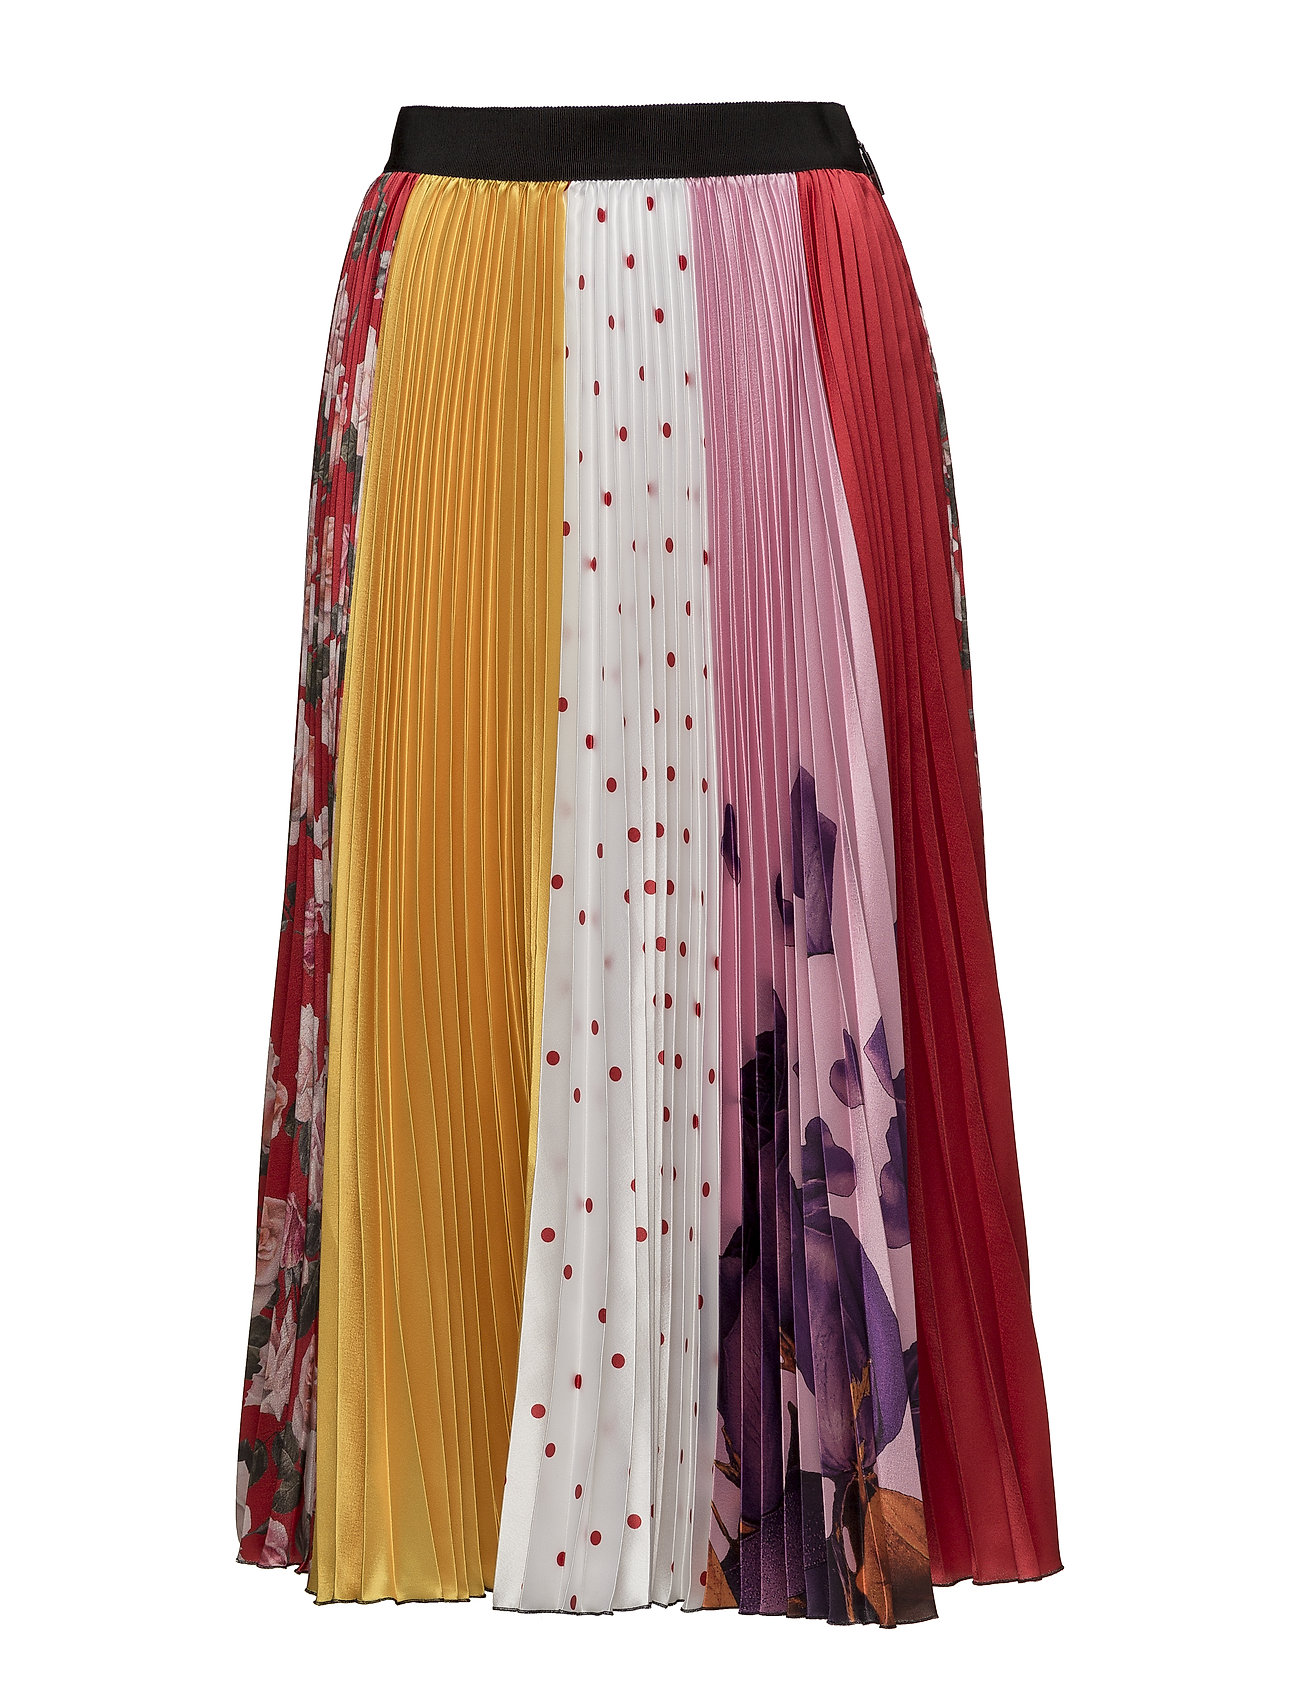 MSGM SKIRT - MULTICOLORED